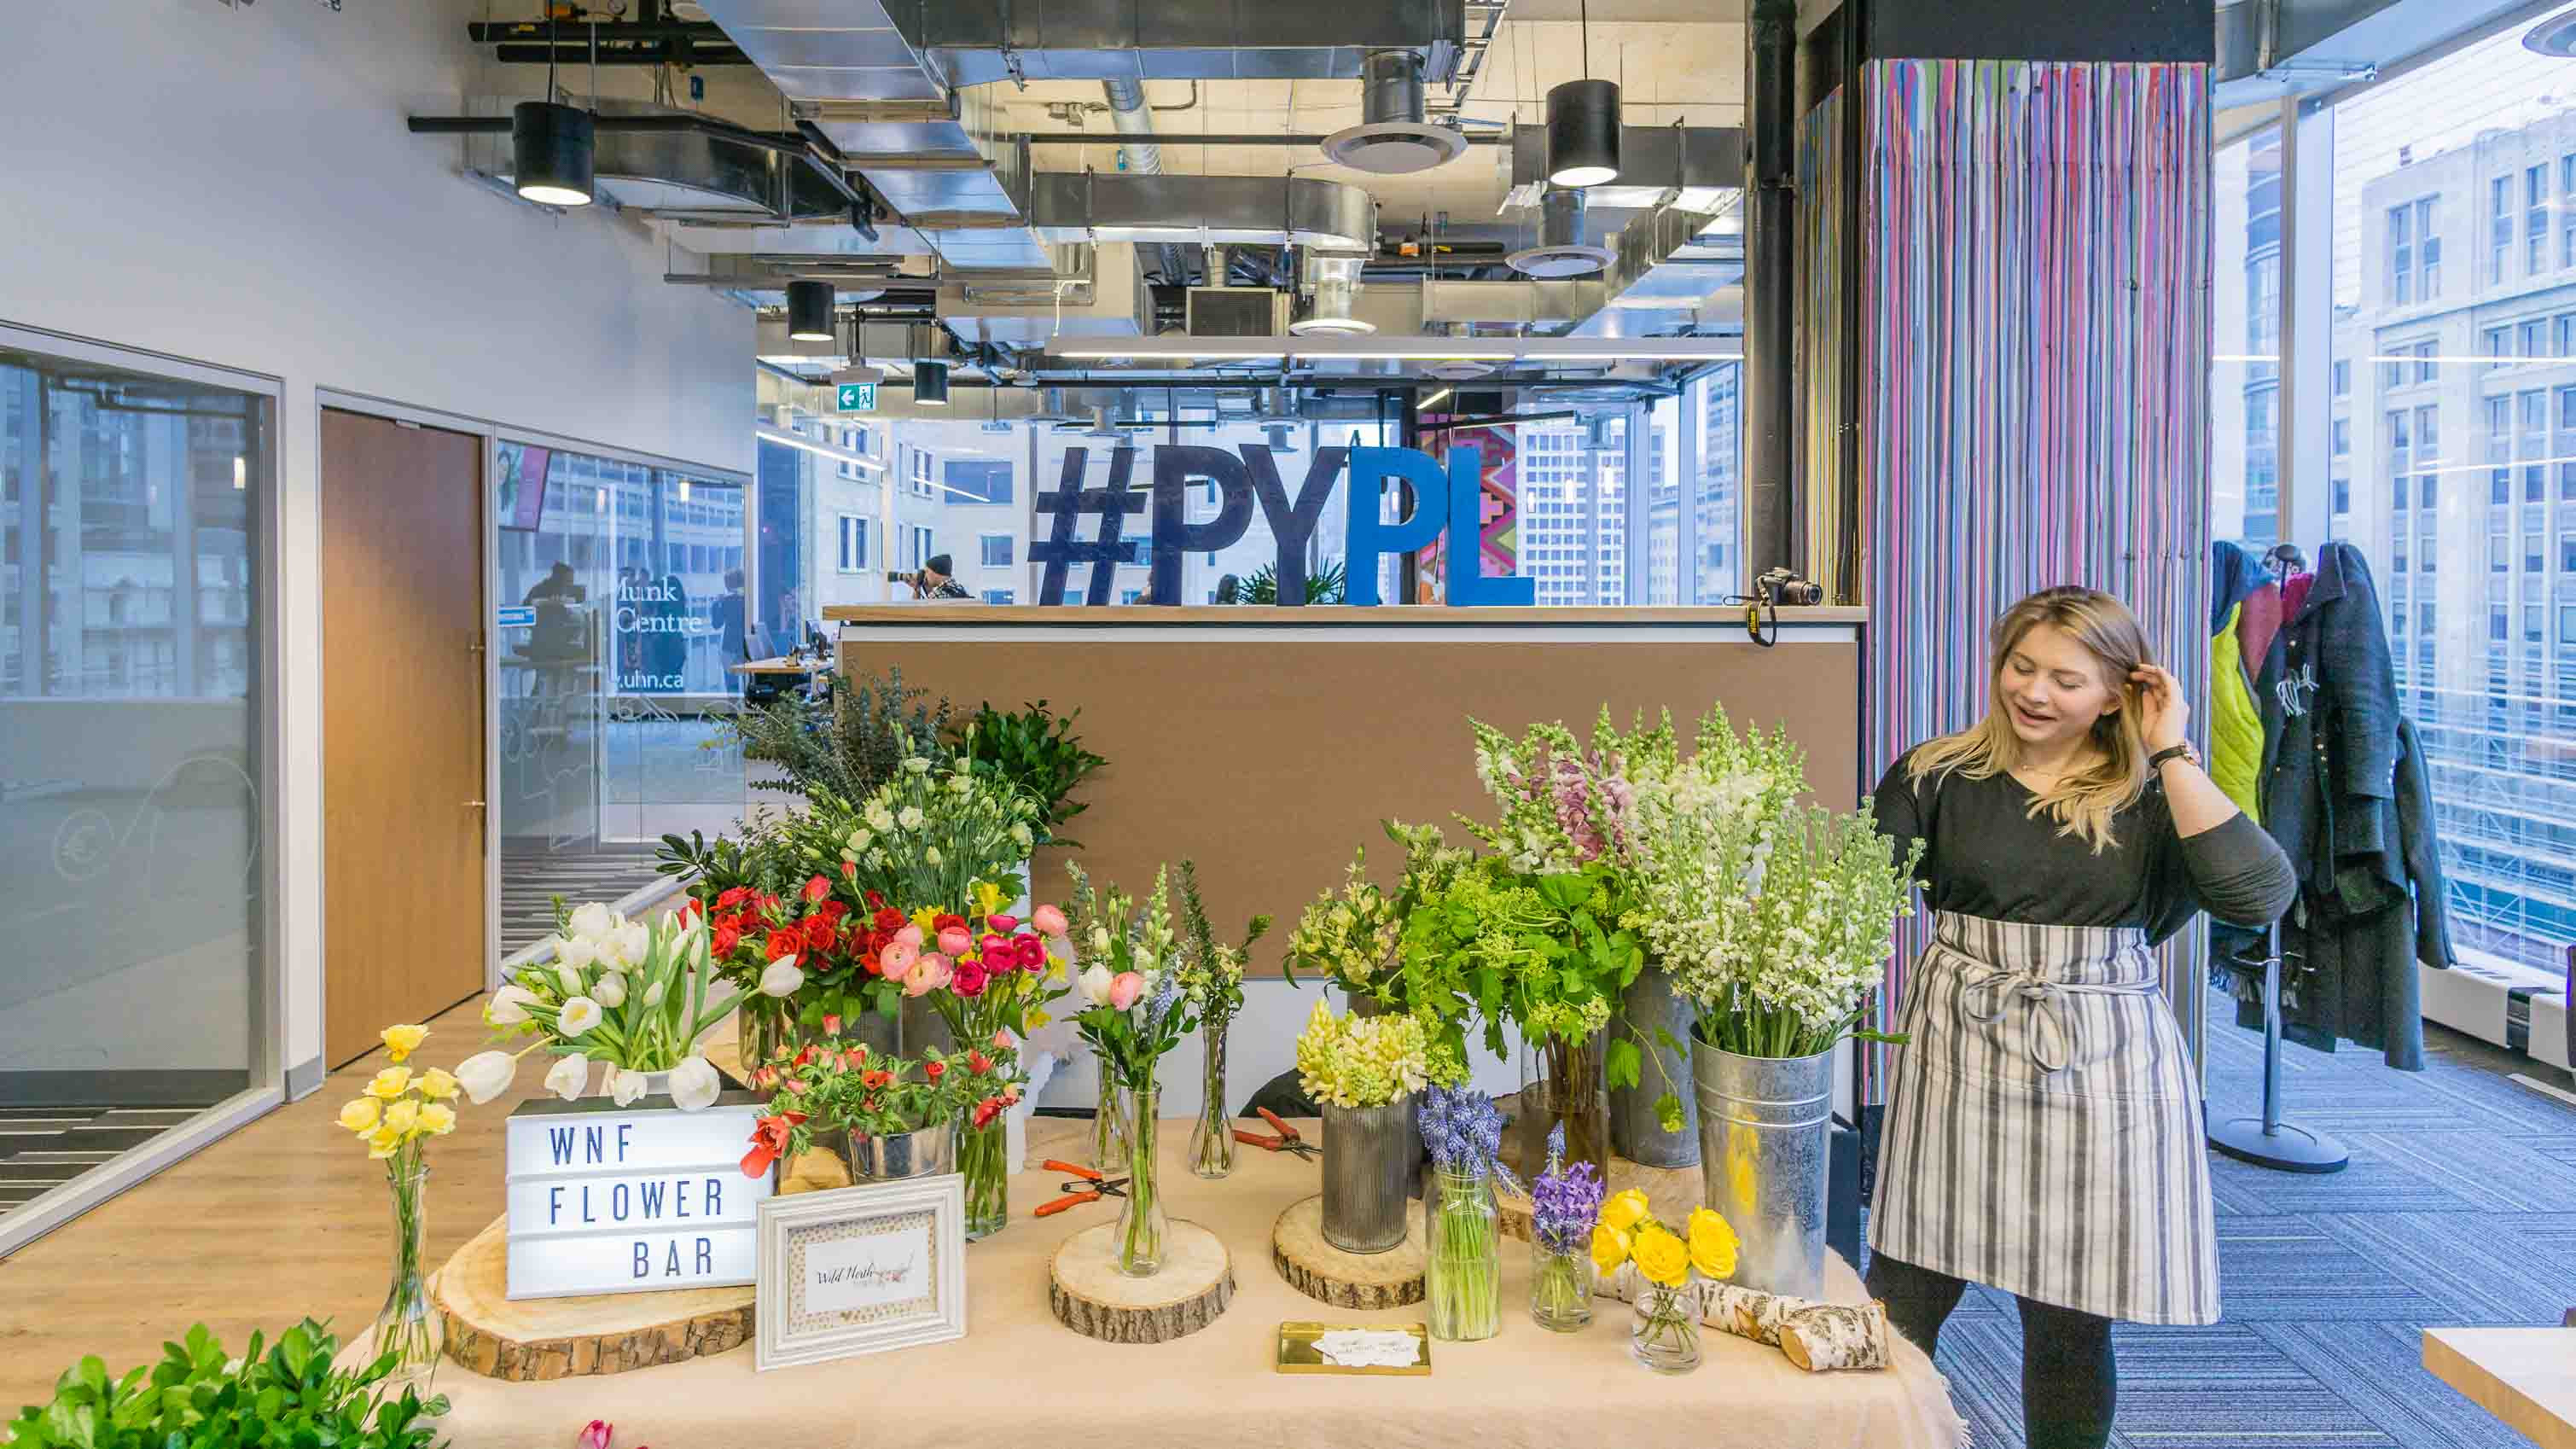 fice Space Inside PayPal Canada s new office at MaRS Discovery District